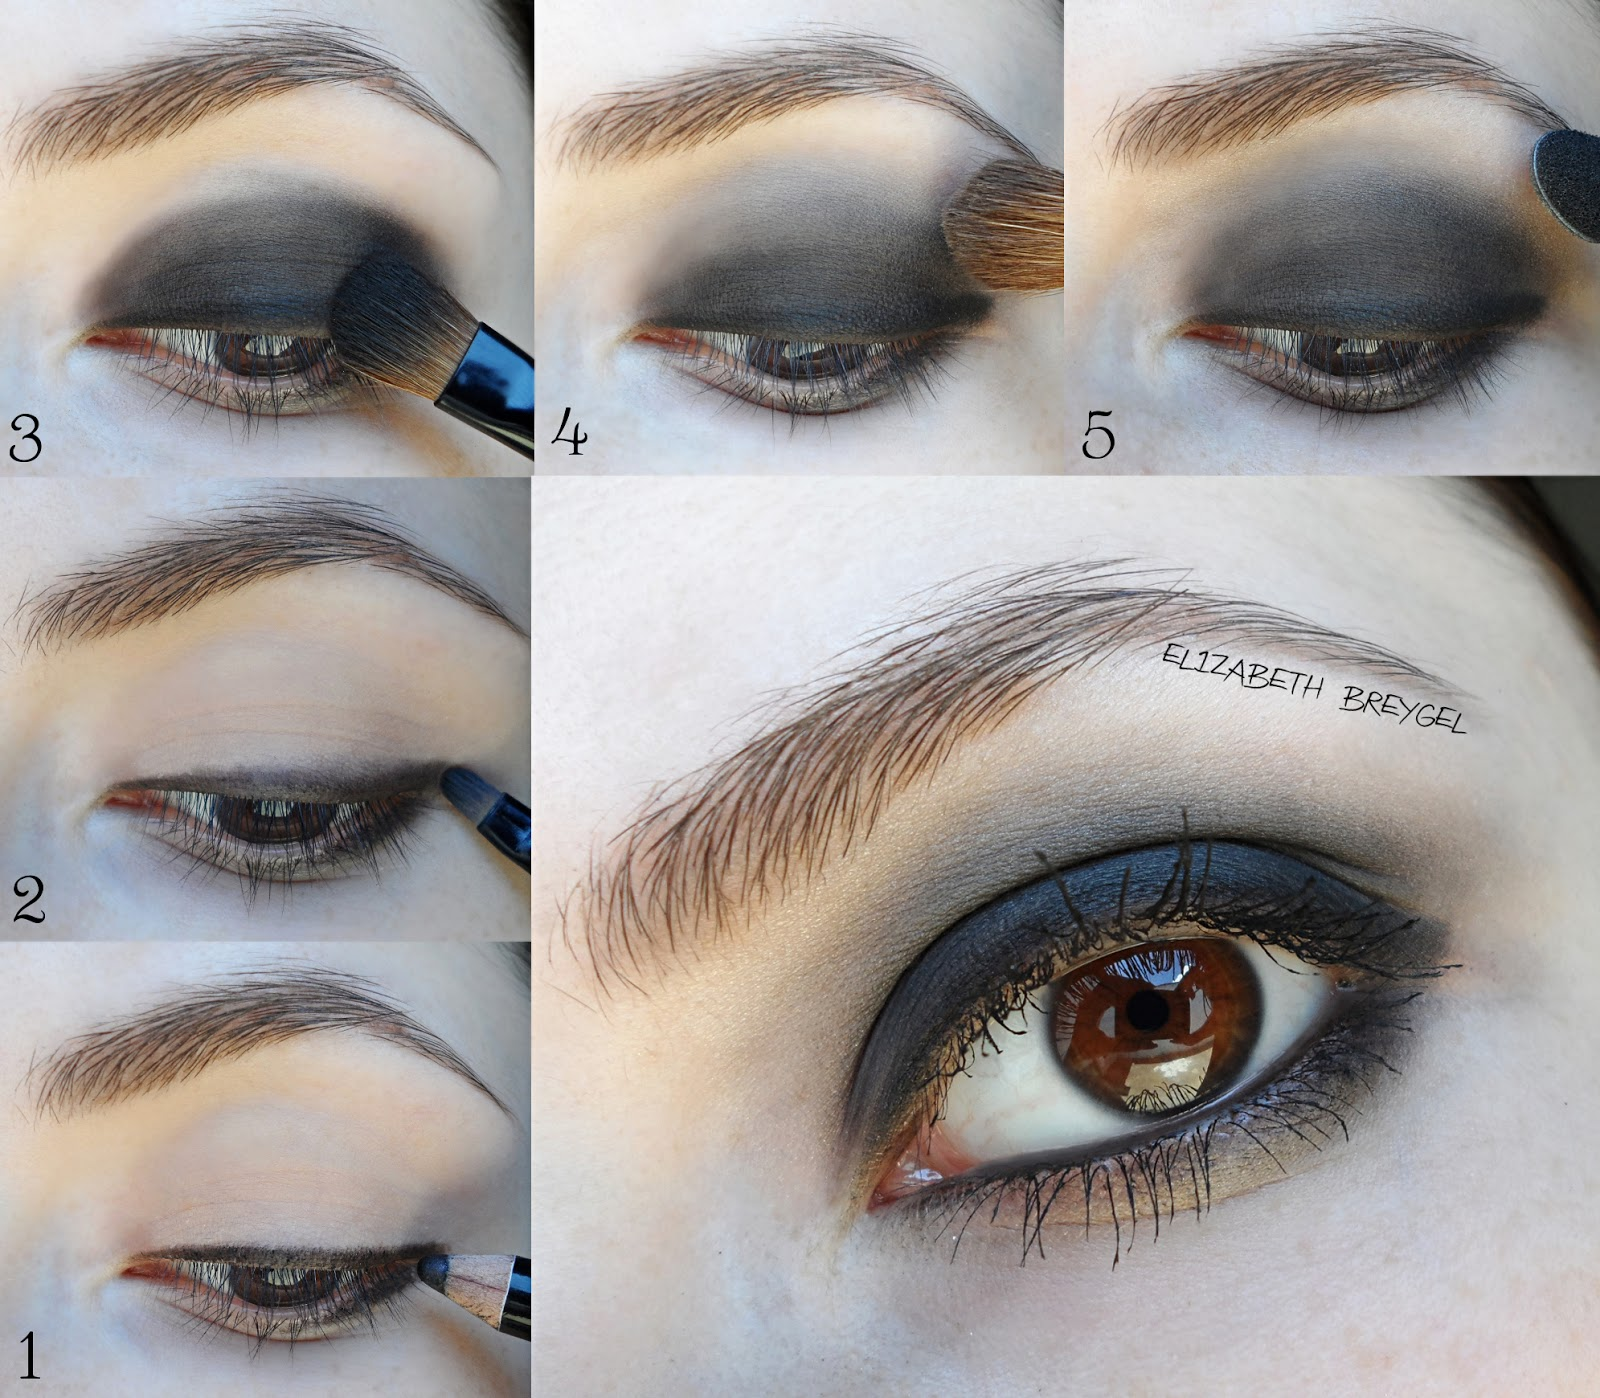 smoky eyes step by step makeup tutorial, black eye shadows